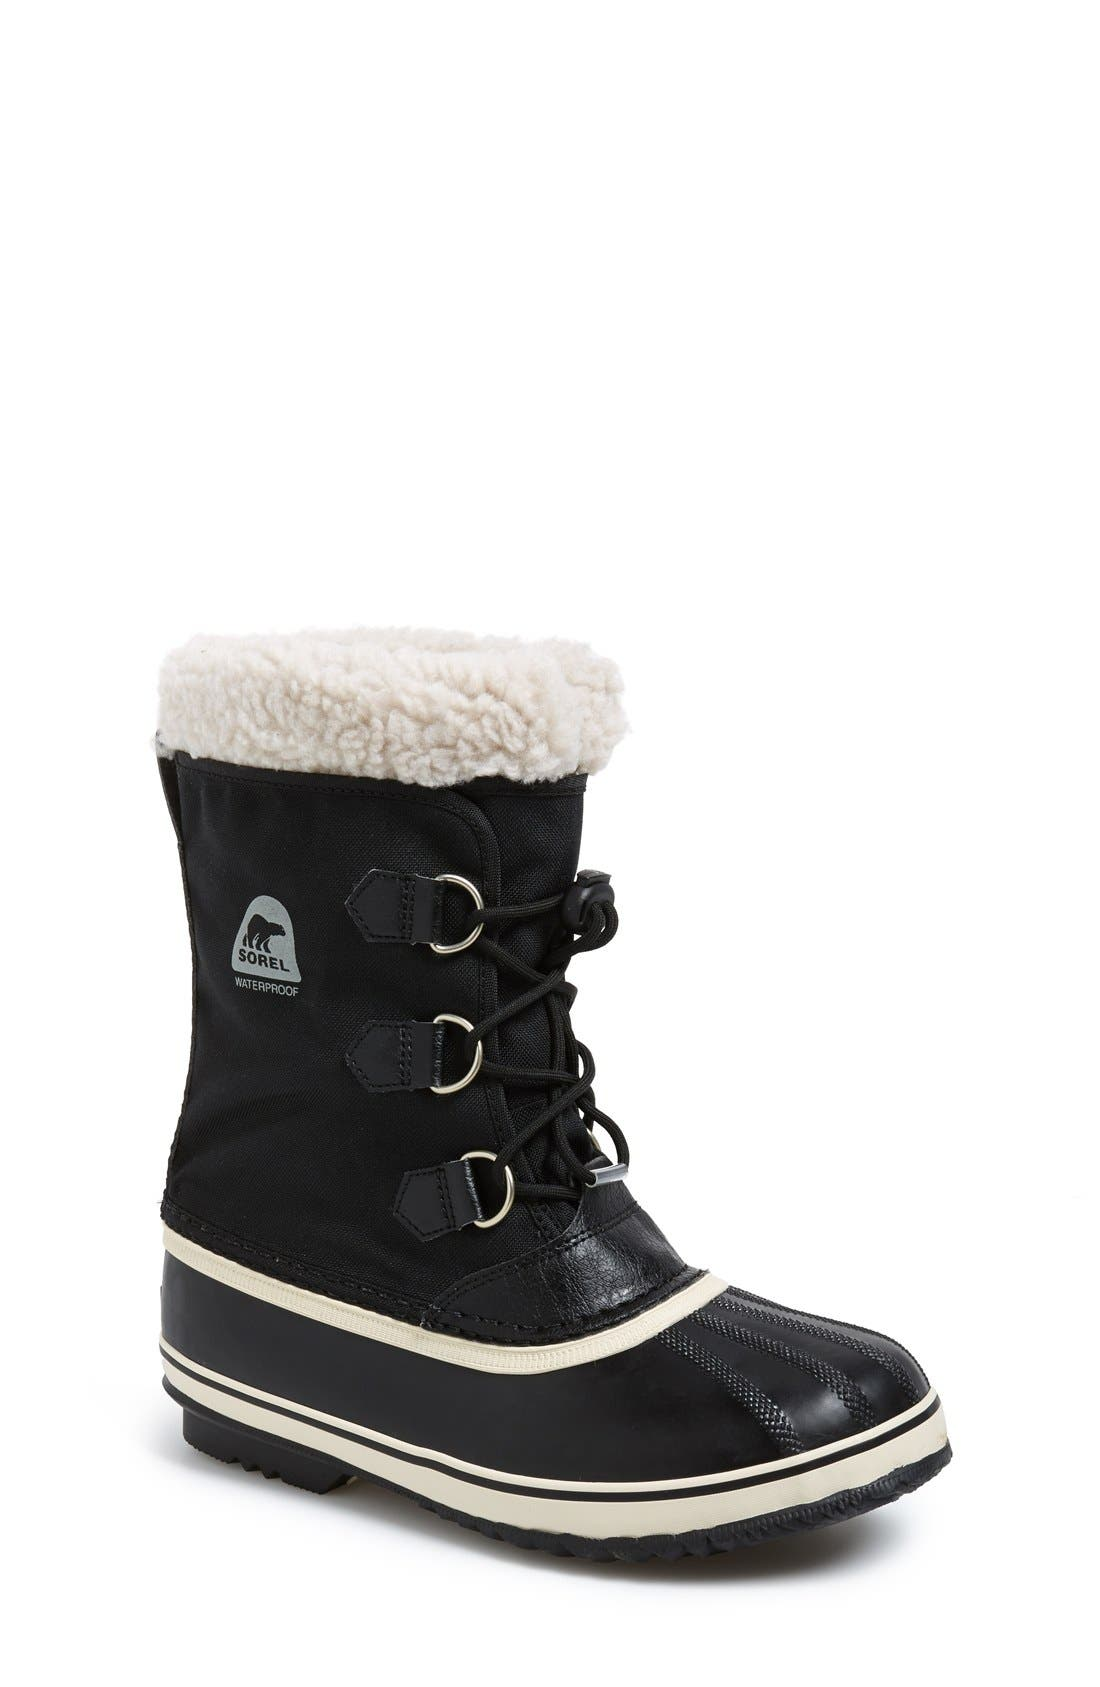 'Yoot Pac' Waterproof Snow Boot,                         Main,                         color, Black